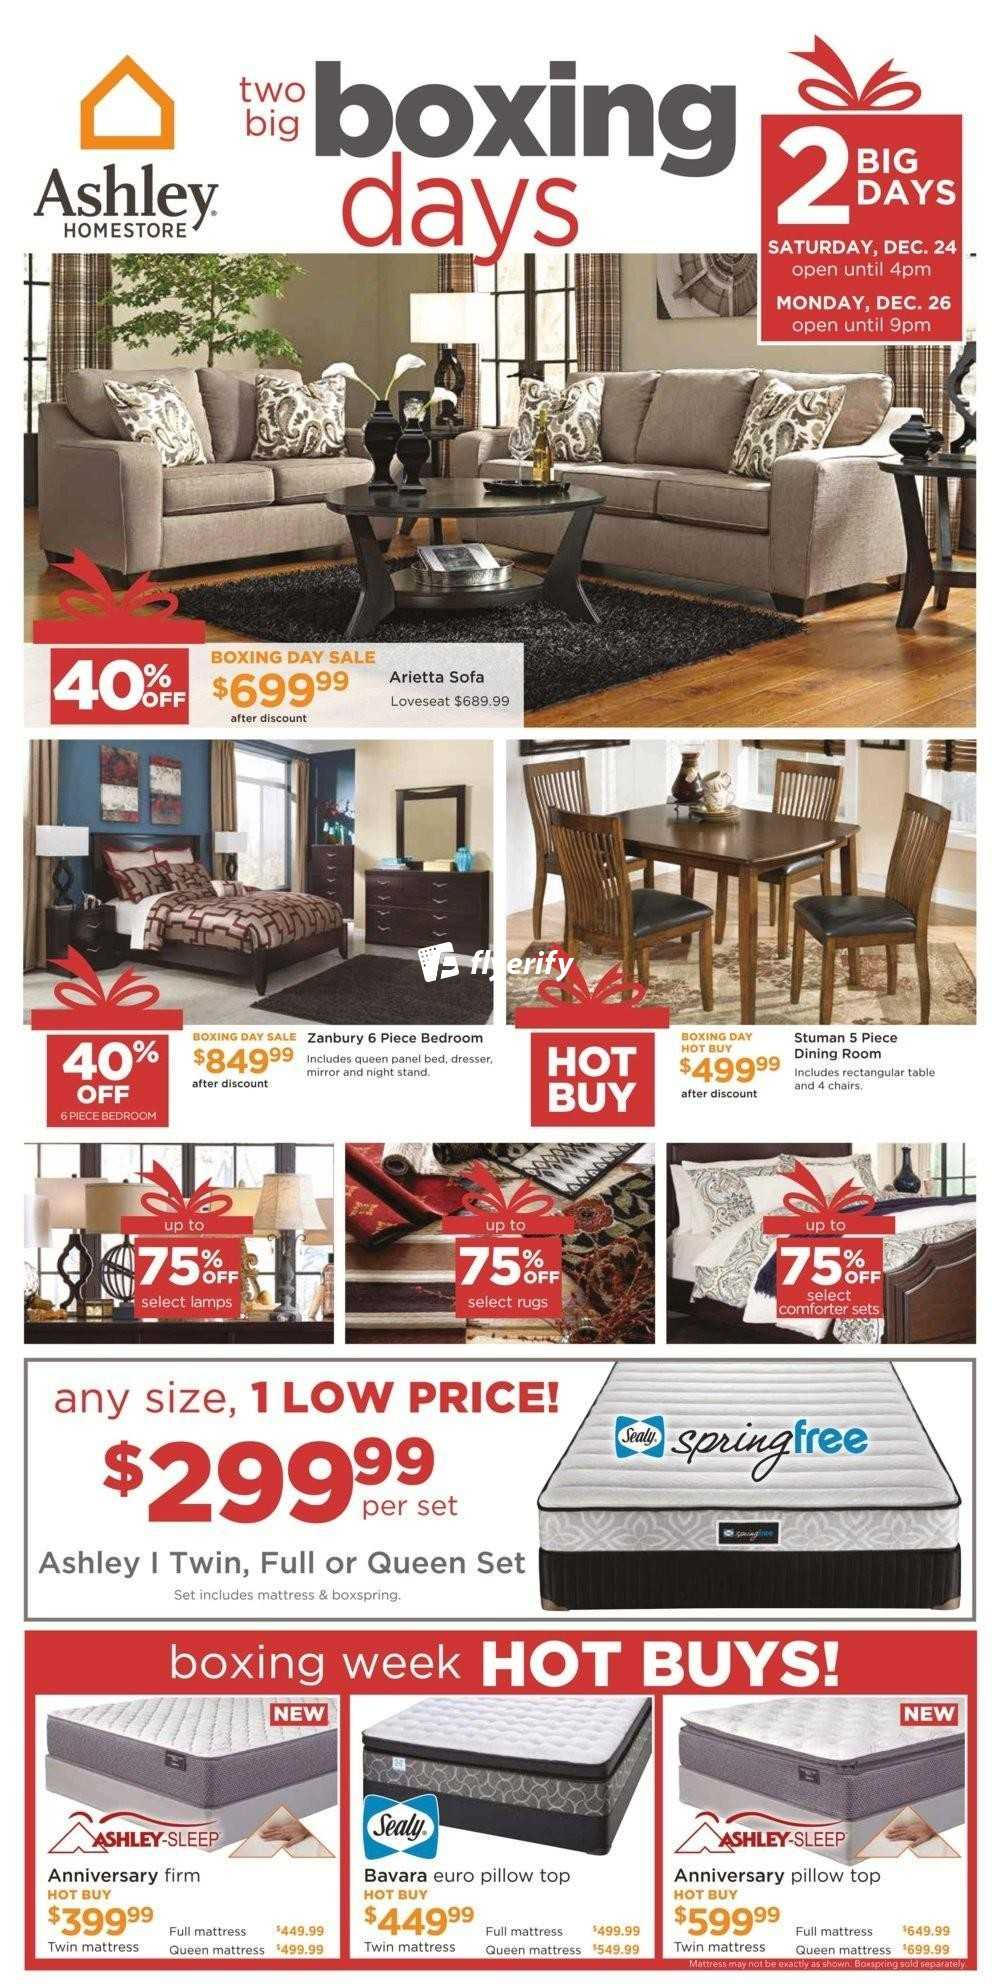 Ashley homestore on boxing day flyer december 24 26 canada for Ashley furniture homestore canada